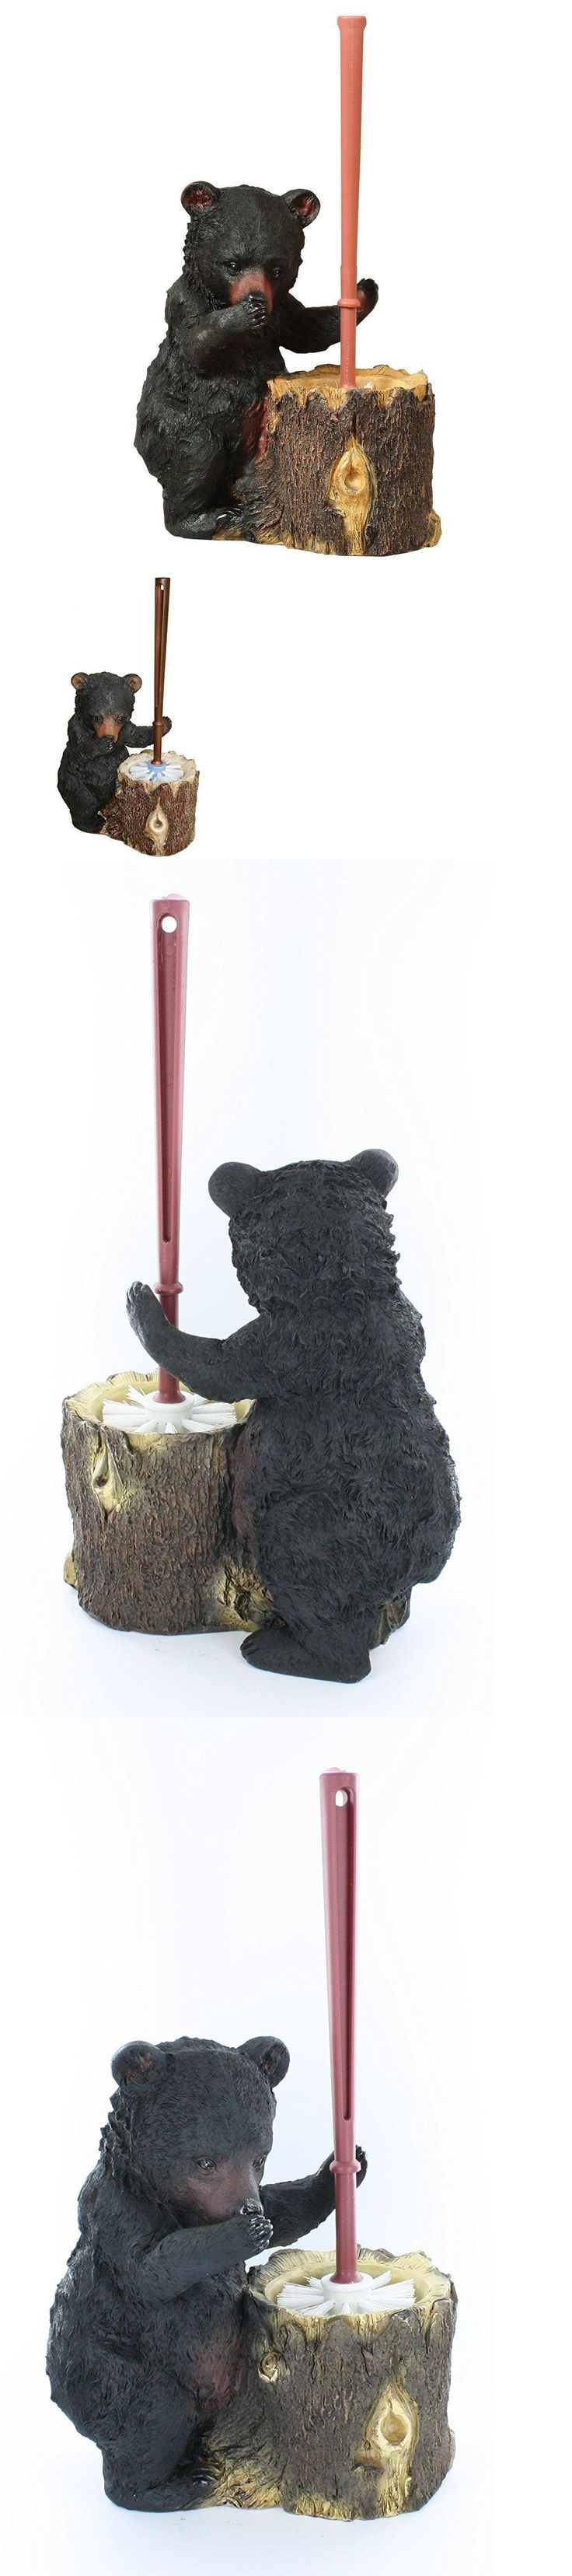 Toilet Brushes and Sets 66723: Stinky Bear Resin Toilet Brush And Holder - Rustic Lodge Decor -> BUY IT NOW ONLY: $35 on eBay!